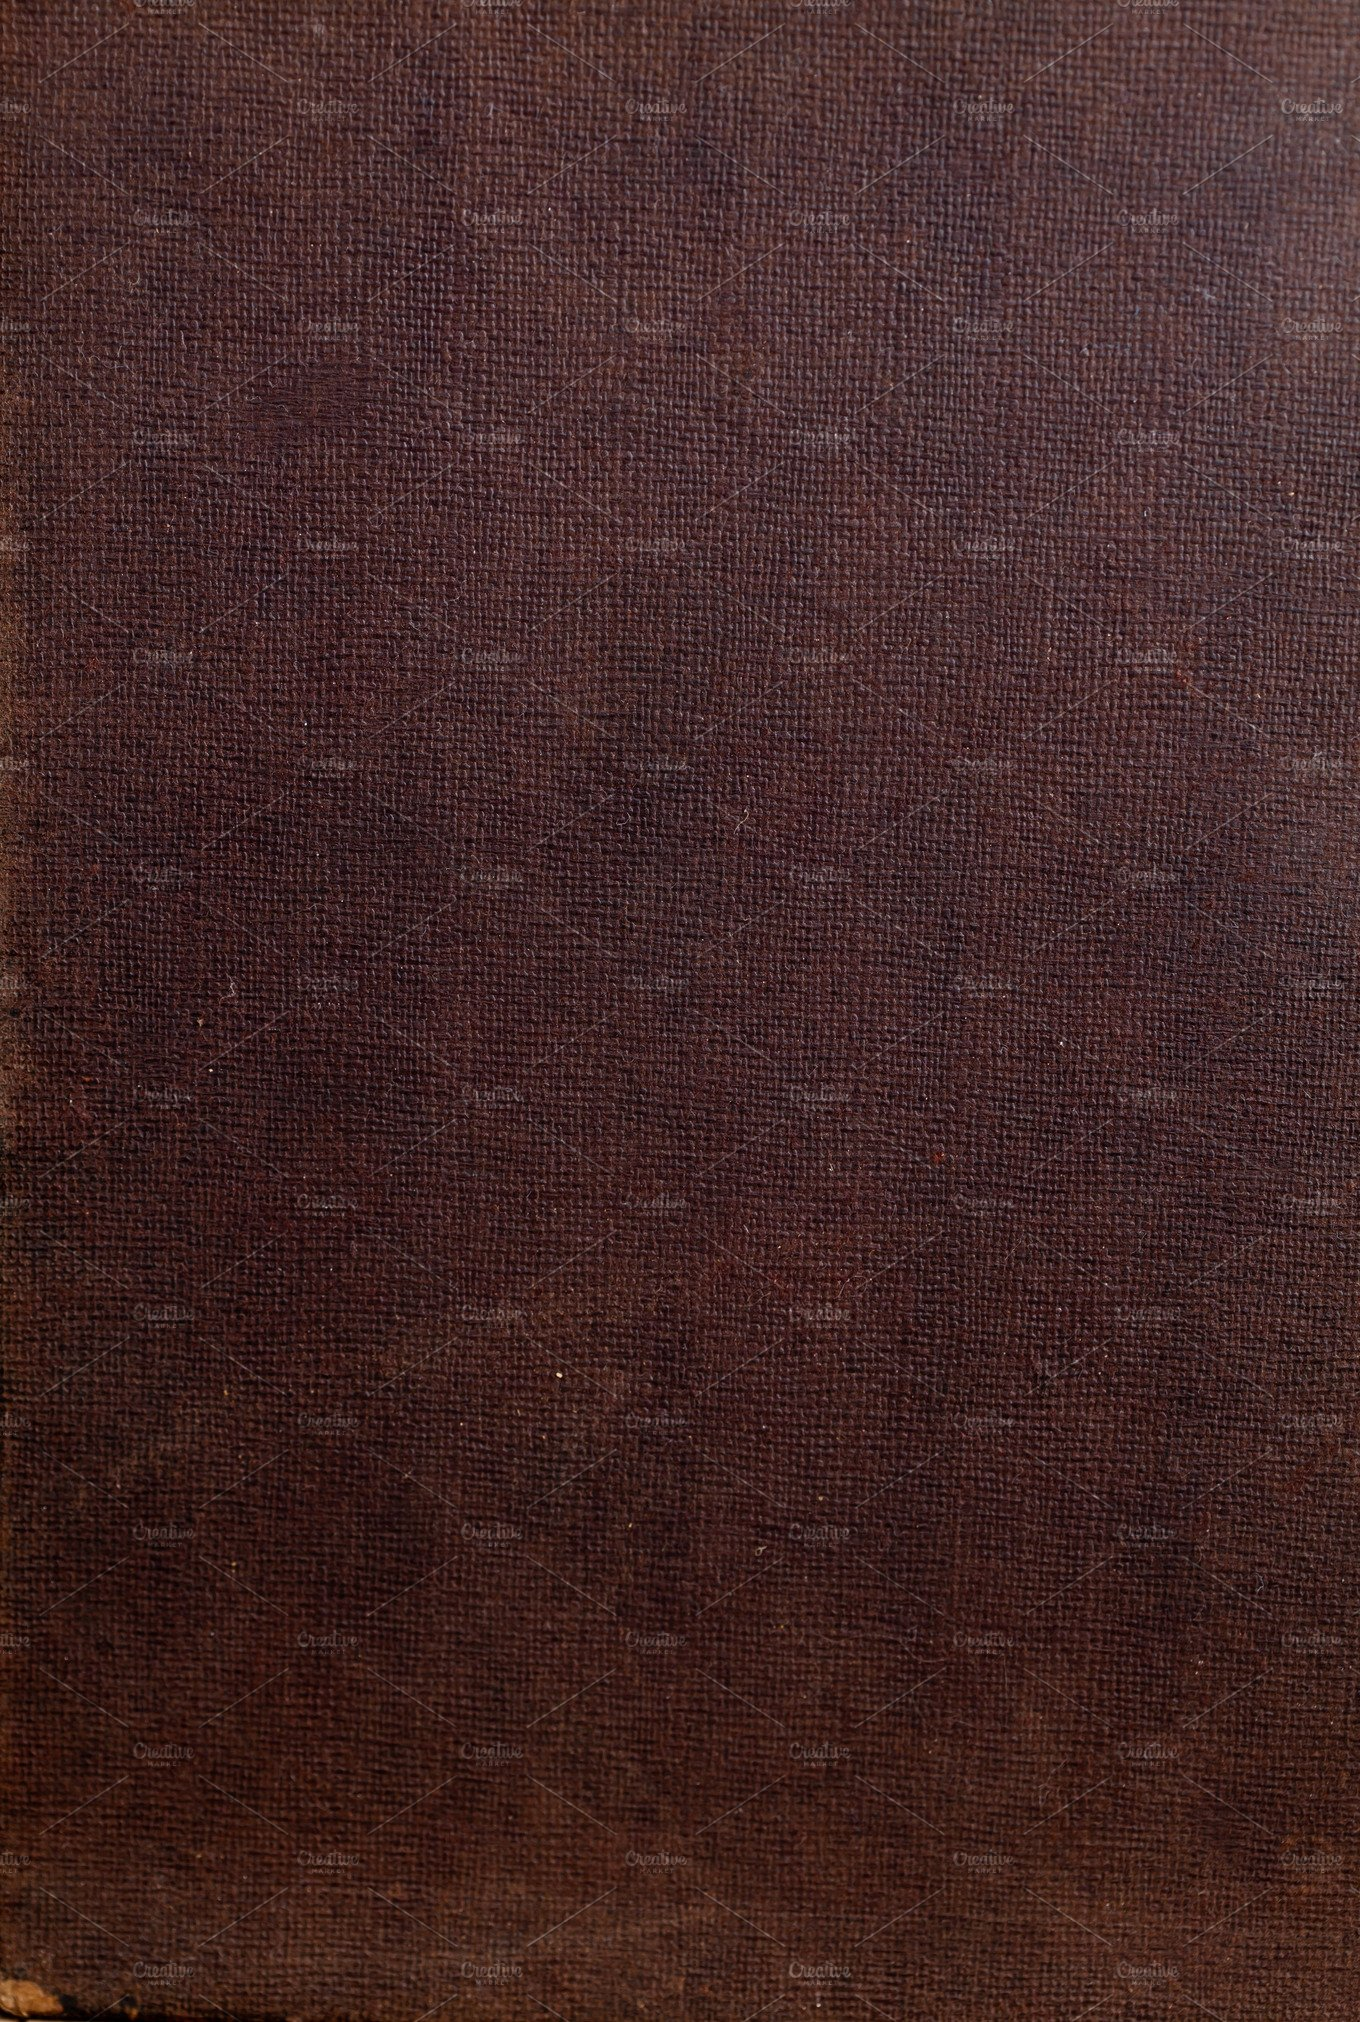 Old Book Cover Texture High Quality Abstract Stock